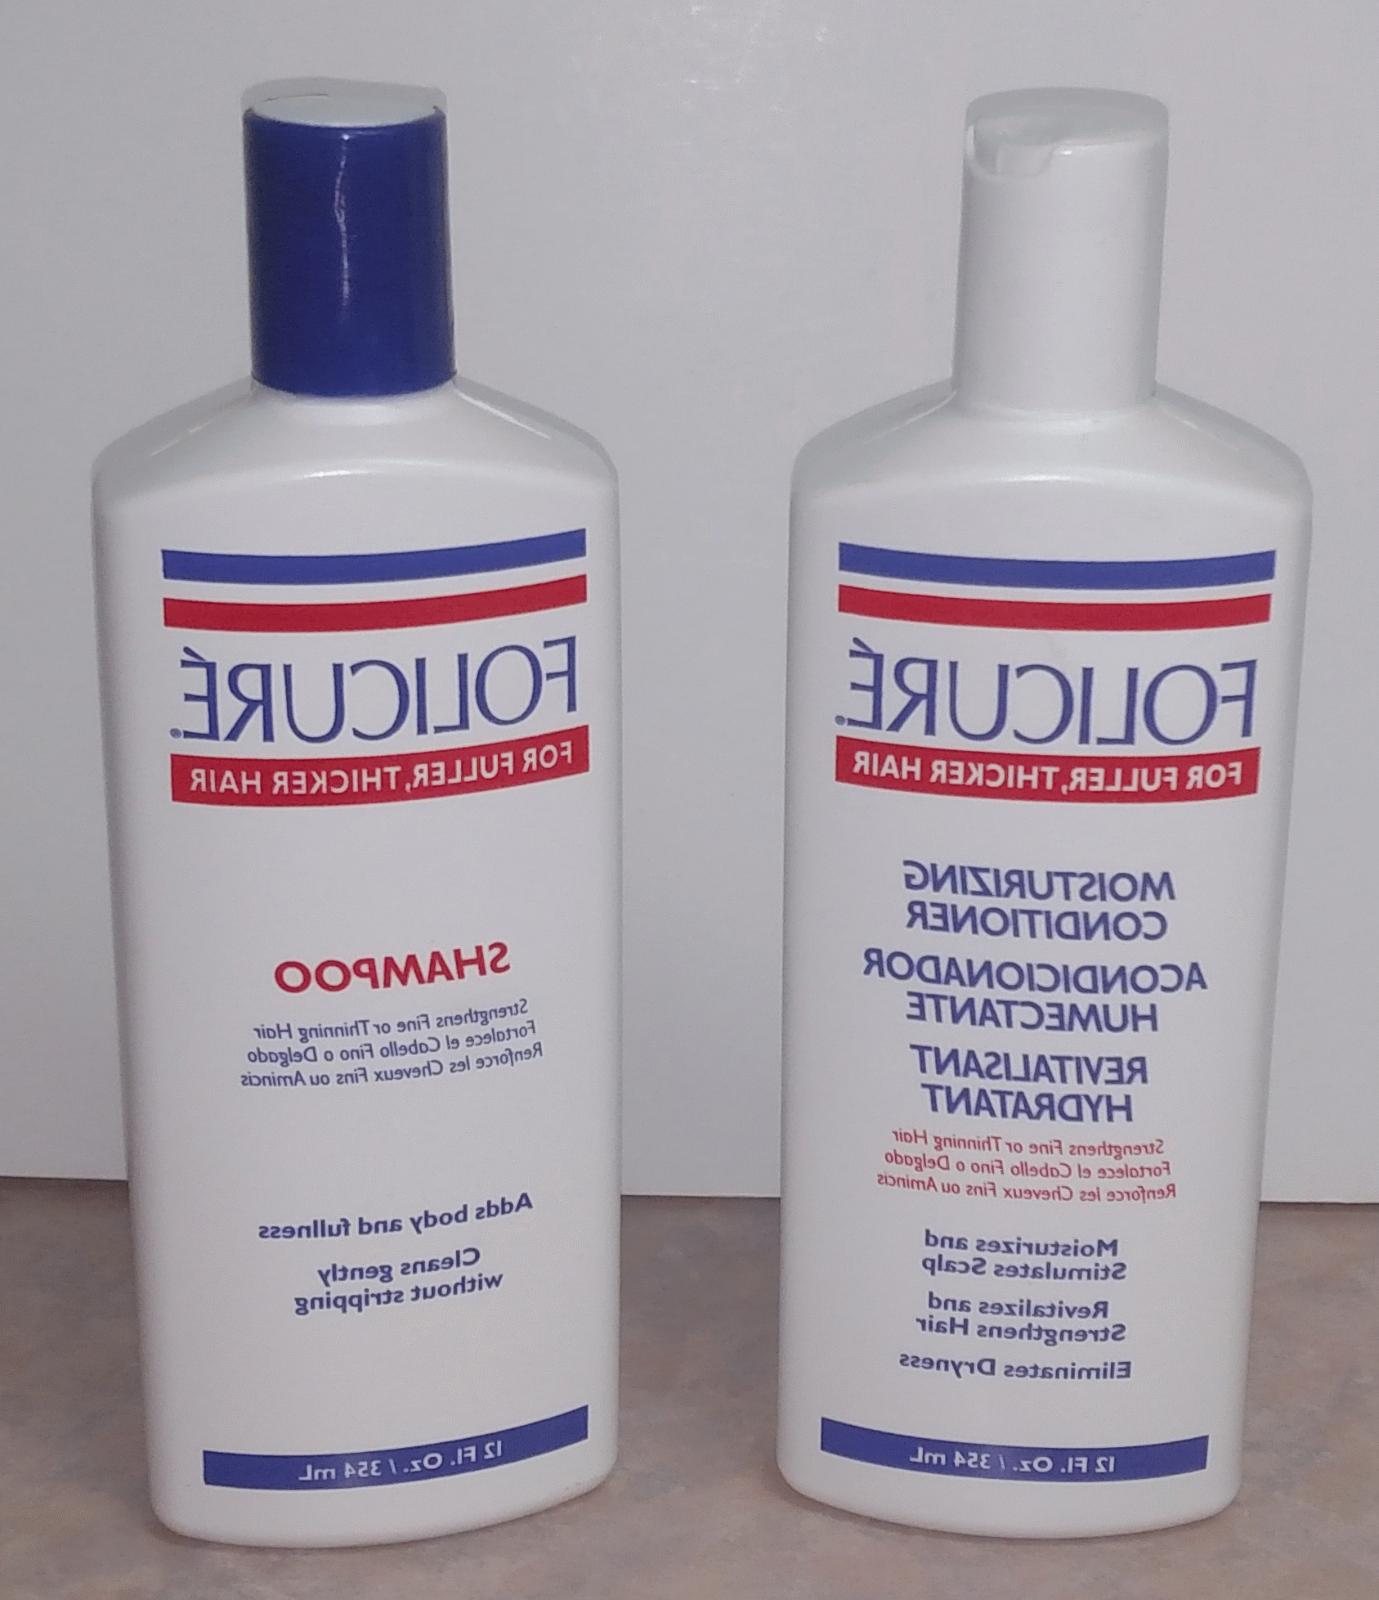 shampoo and conditioner for fuller thicker hair